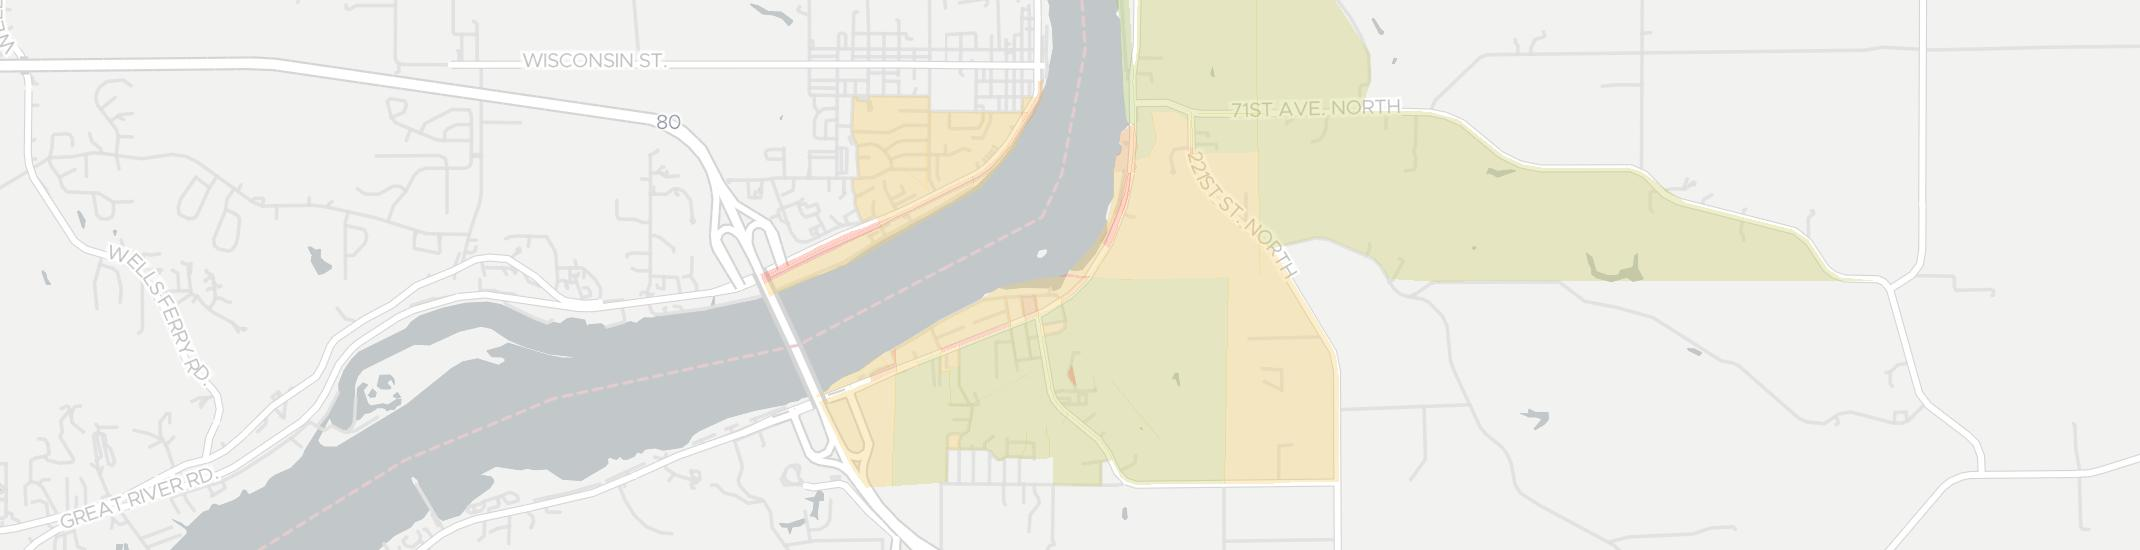 Rapids City Internet Competition Map. Click for interactive map.